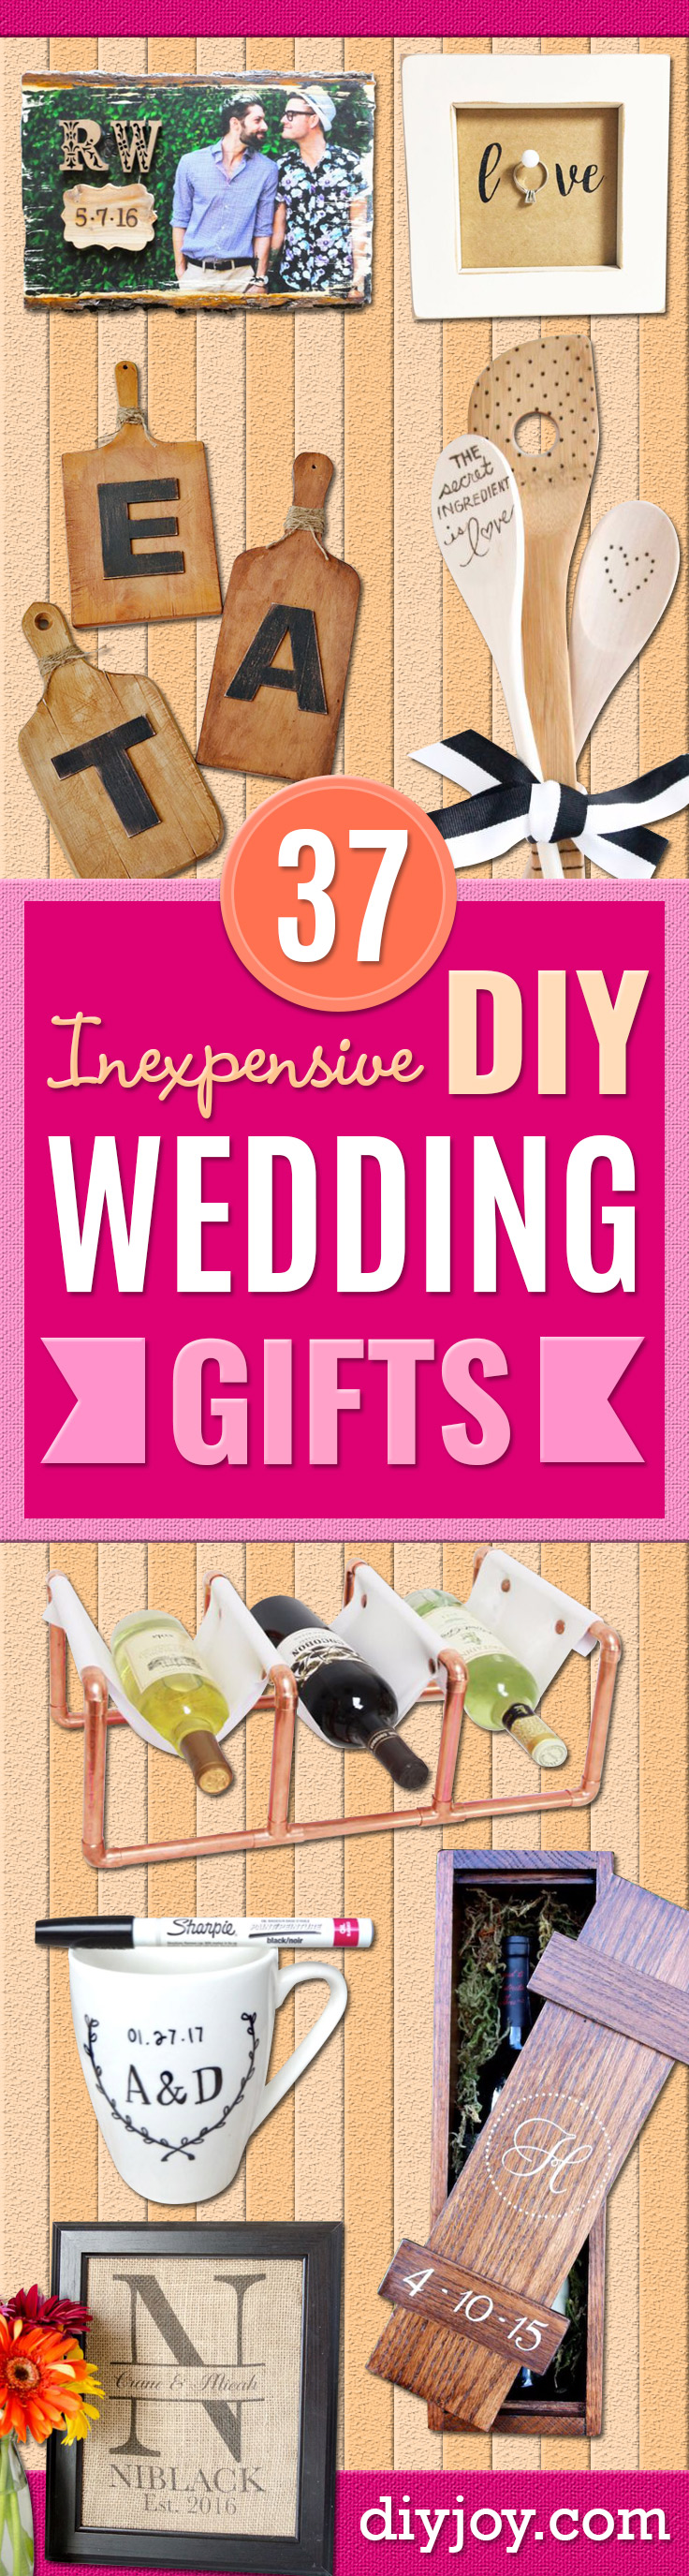 Cheap Wedding Gift Ideas - DIY Wedding Gifts You Can Make On A Budget - Quick and Easy Ideas for Handmade Presents for the Couple Getting Married - Inexpensive Things To Make for Bride and Groom - DIY Home Decor, Wall Art, Glassware, Furniture, Tableware, Place Settings, Cake and Cookie Plates and Glasses http://diyjoy.com/cheap-diy-wedding-gift-ideas